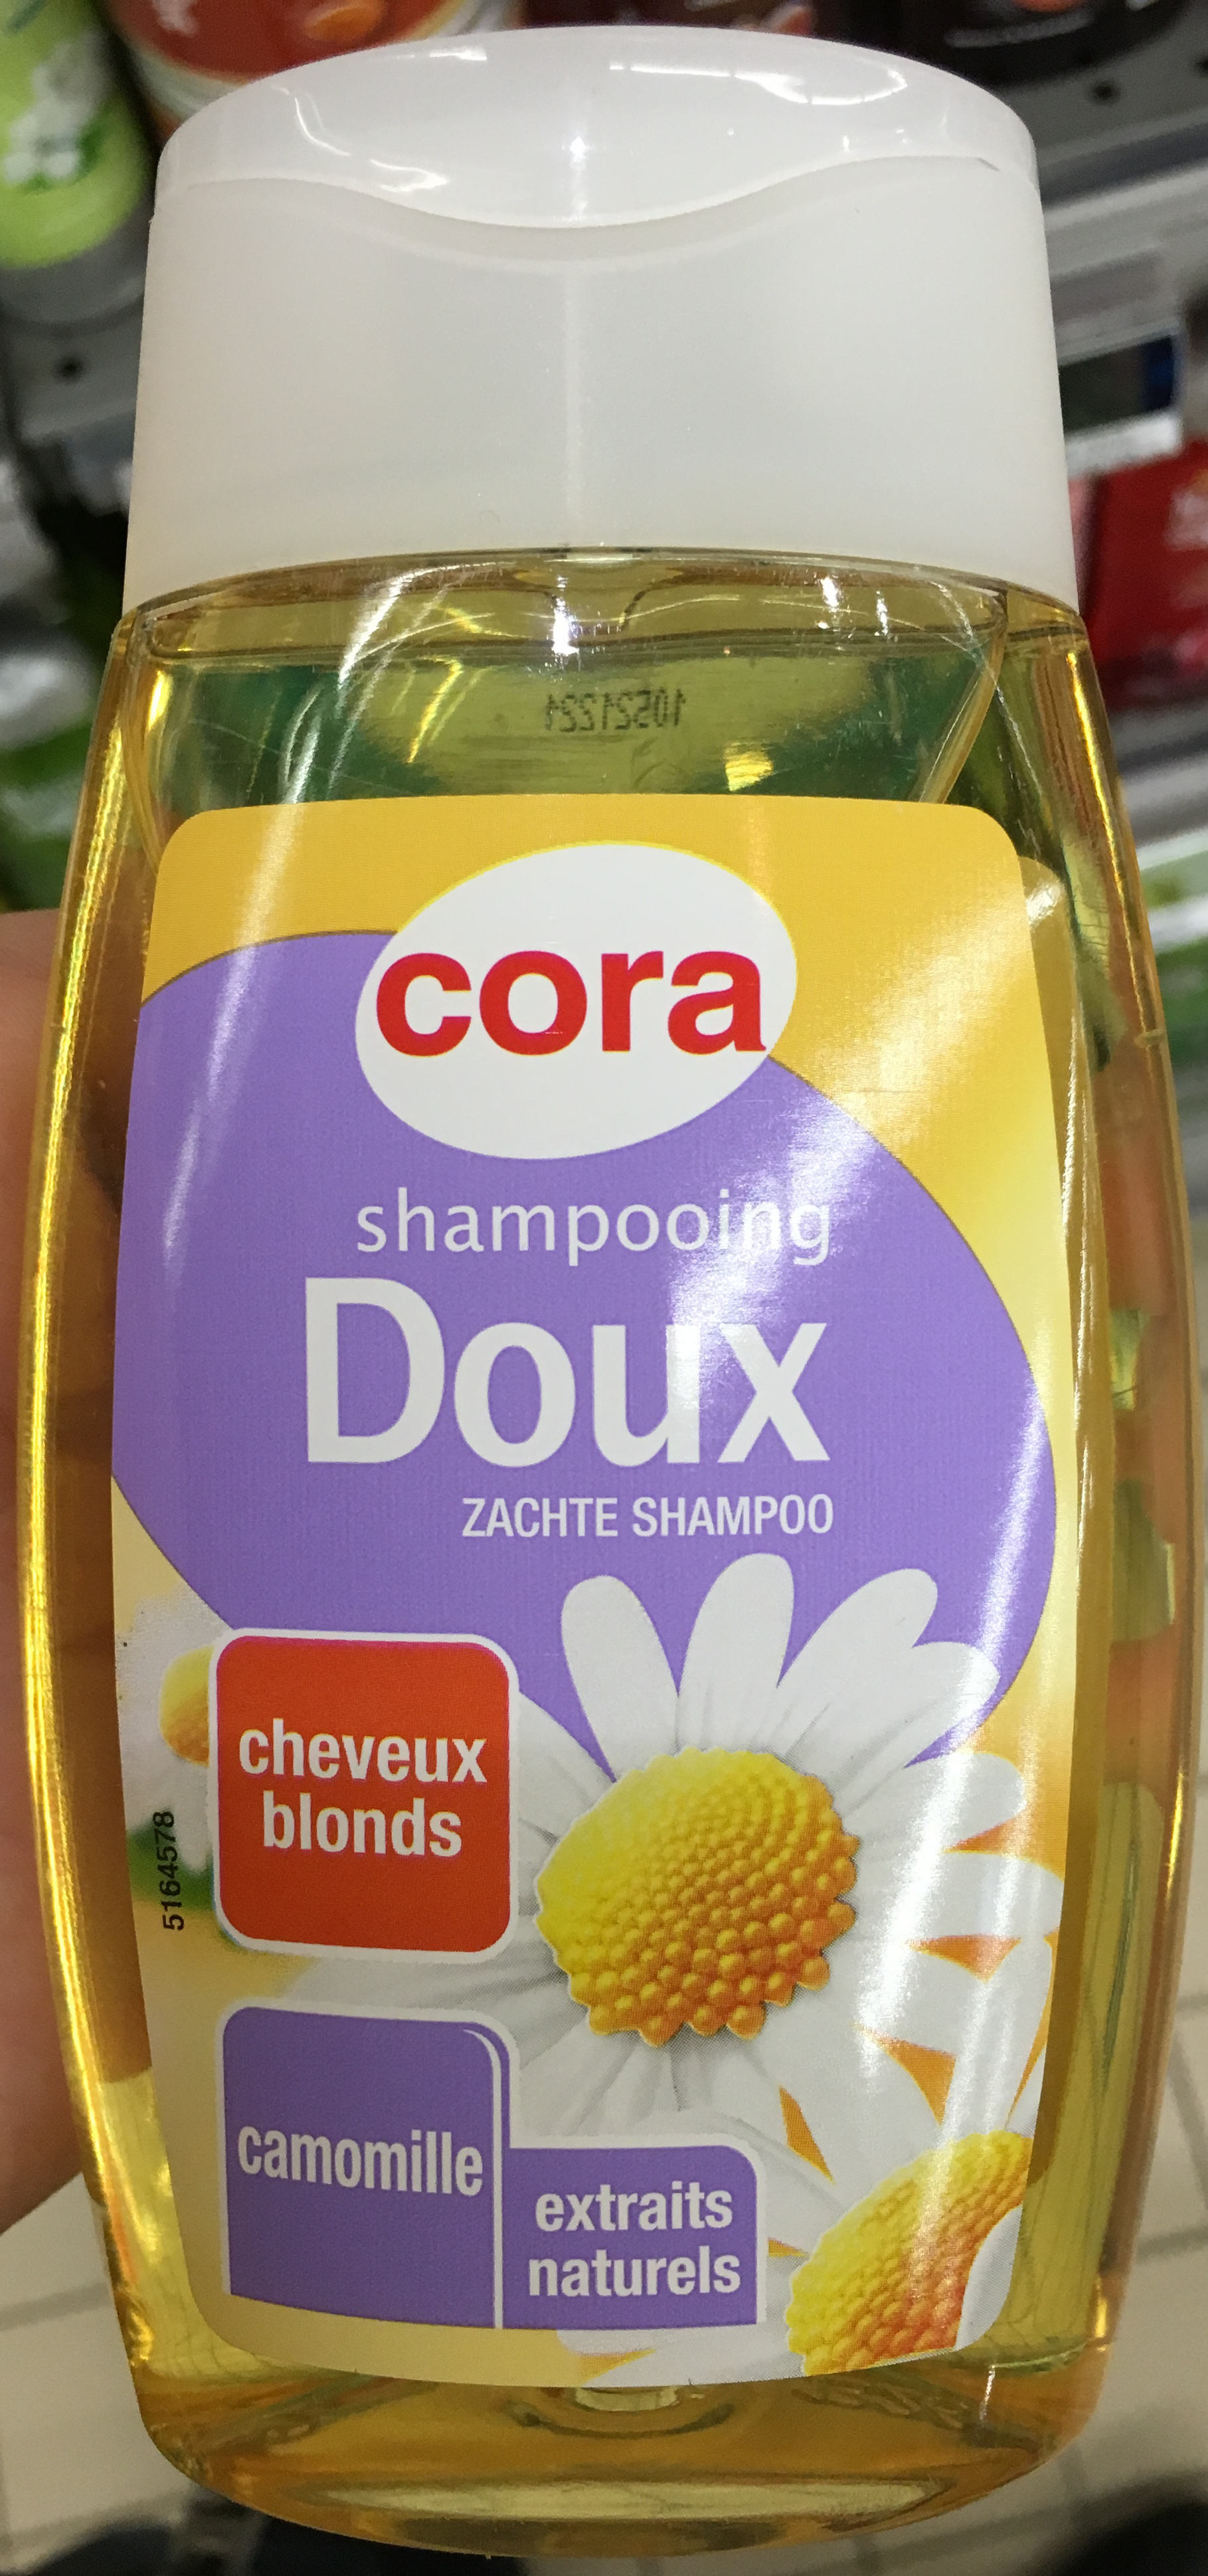 Shampooing Doux cheveux blonds Camomille - Product - fr